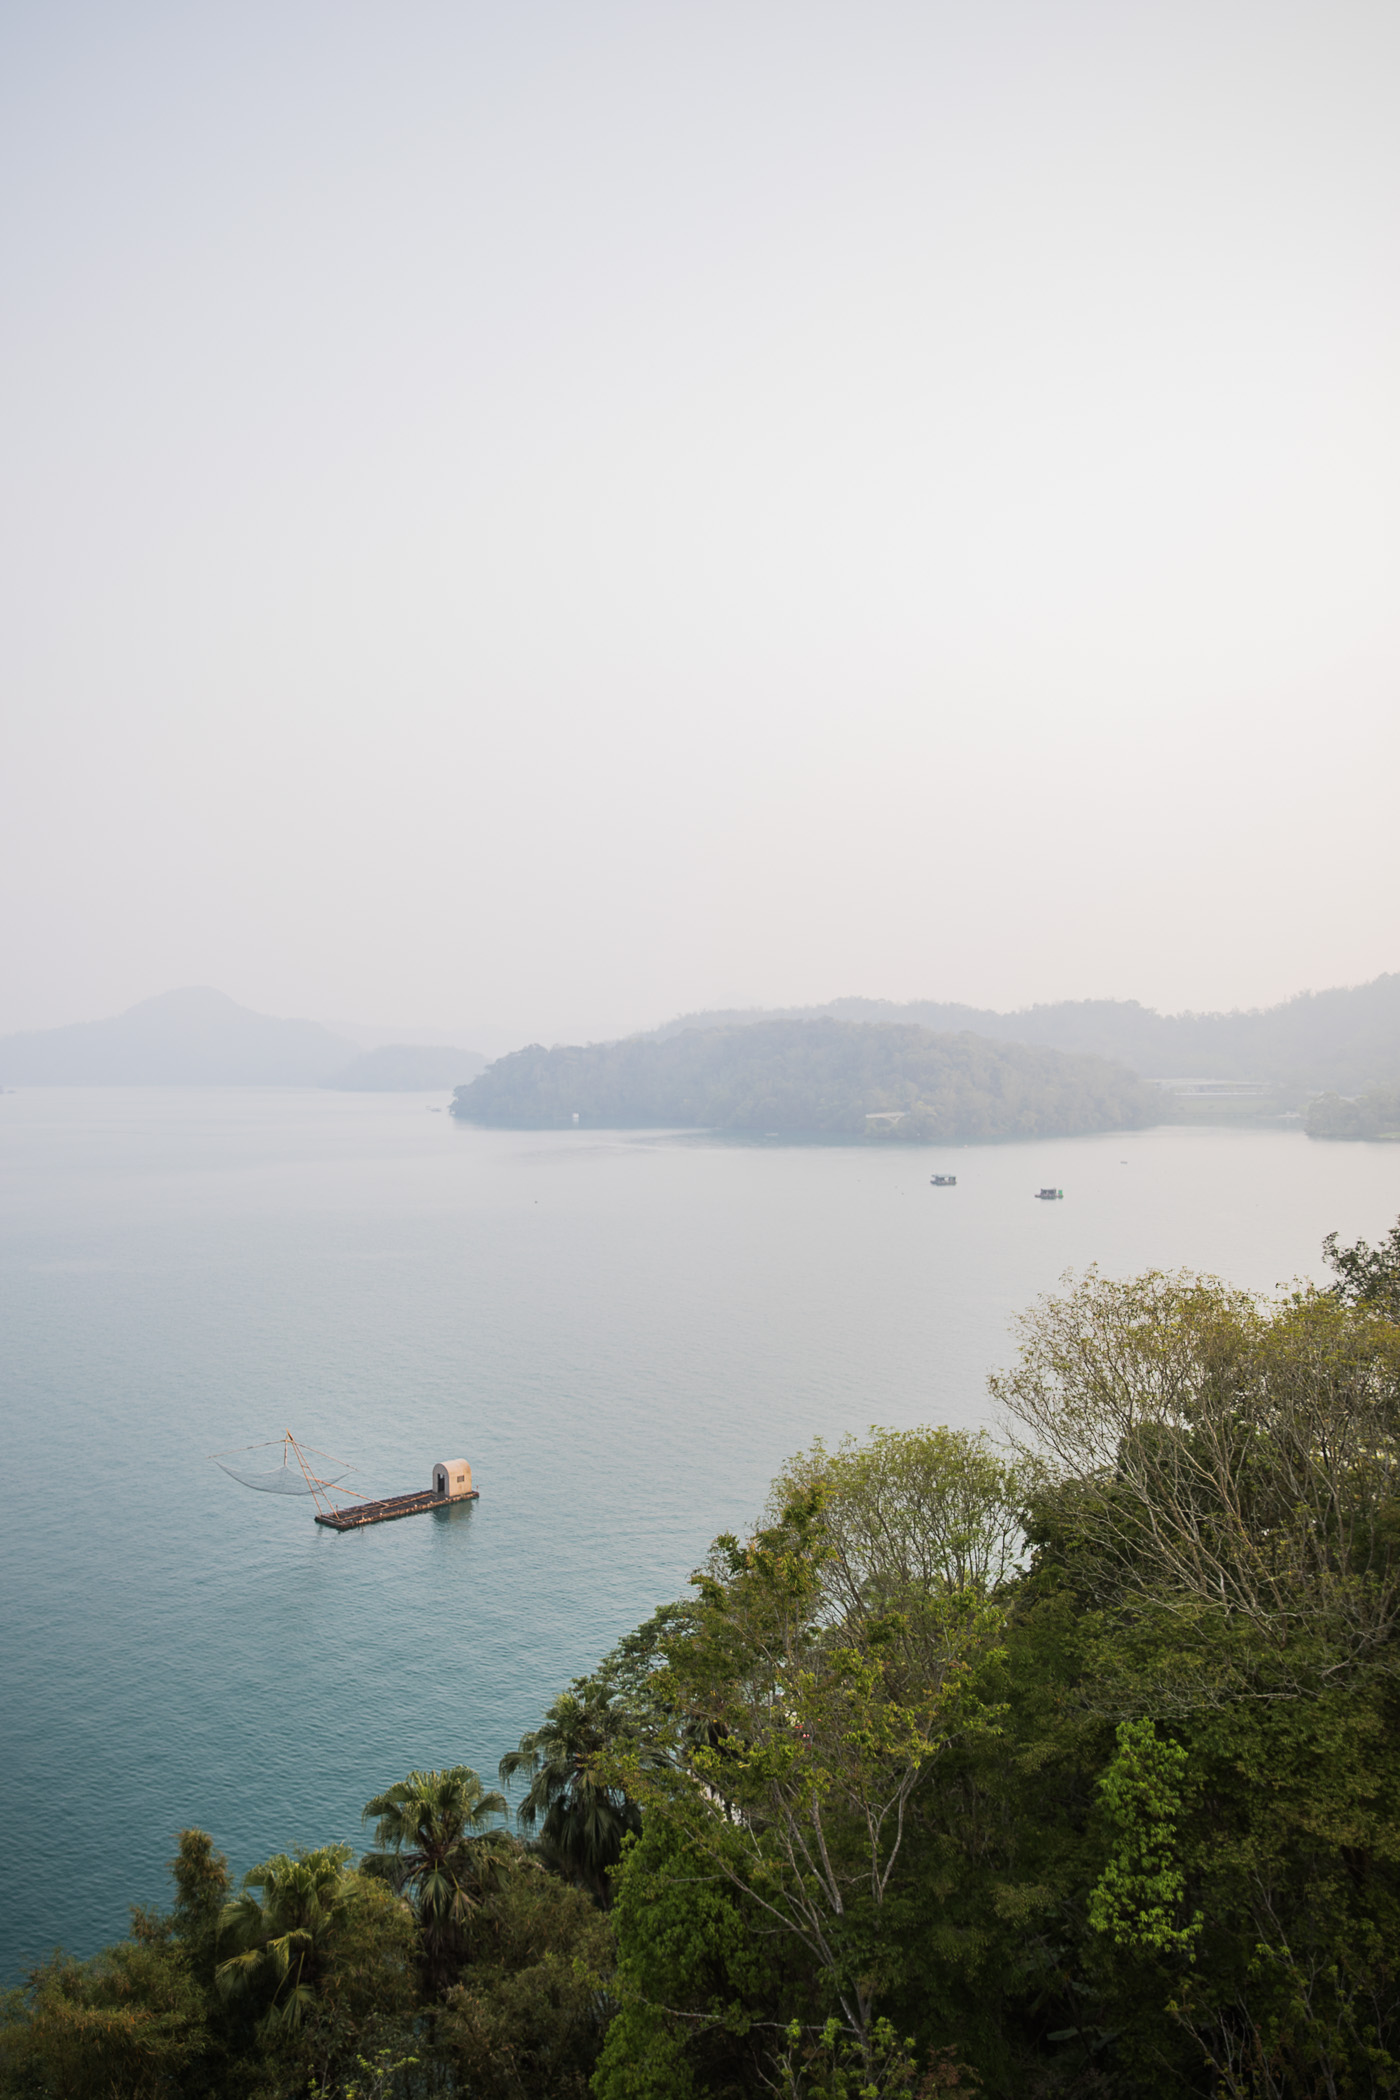 Packing for Southeast Asia - my best tips and advice for traveling light in a hot and humid cilmate